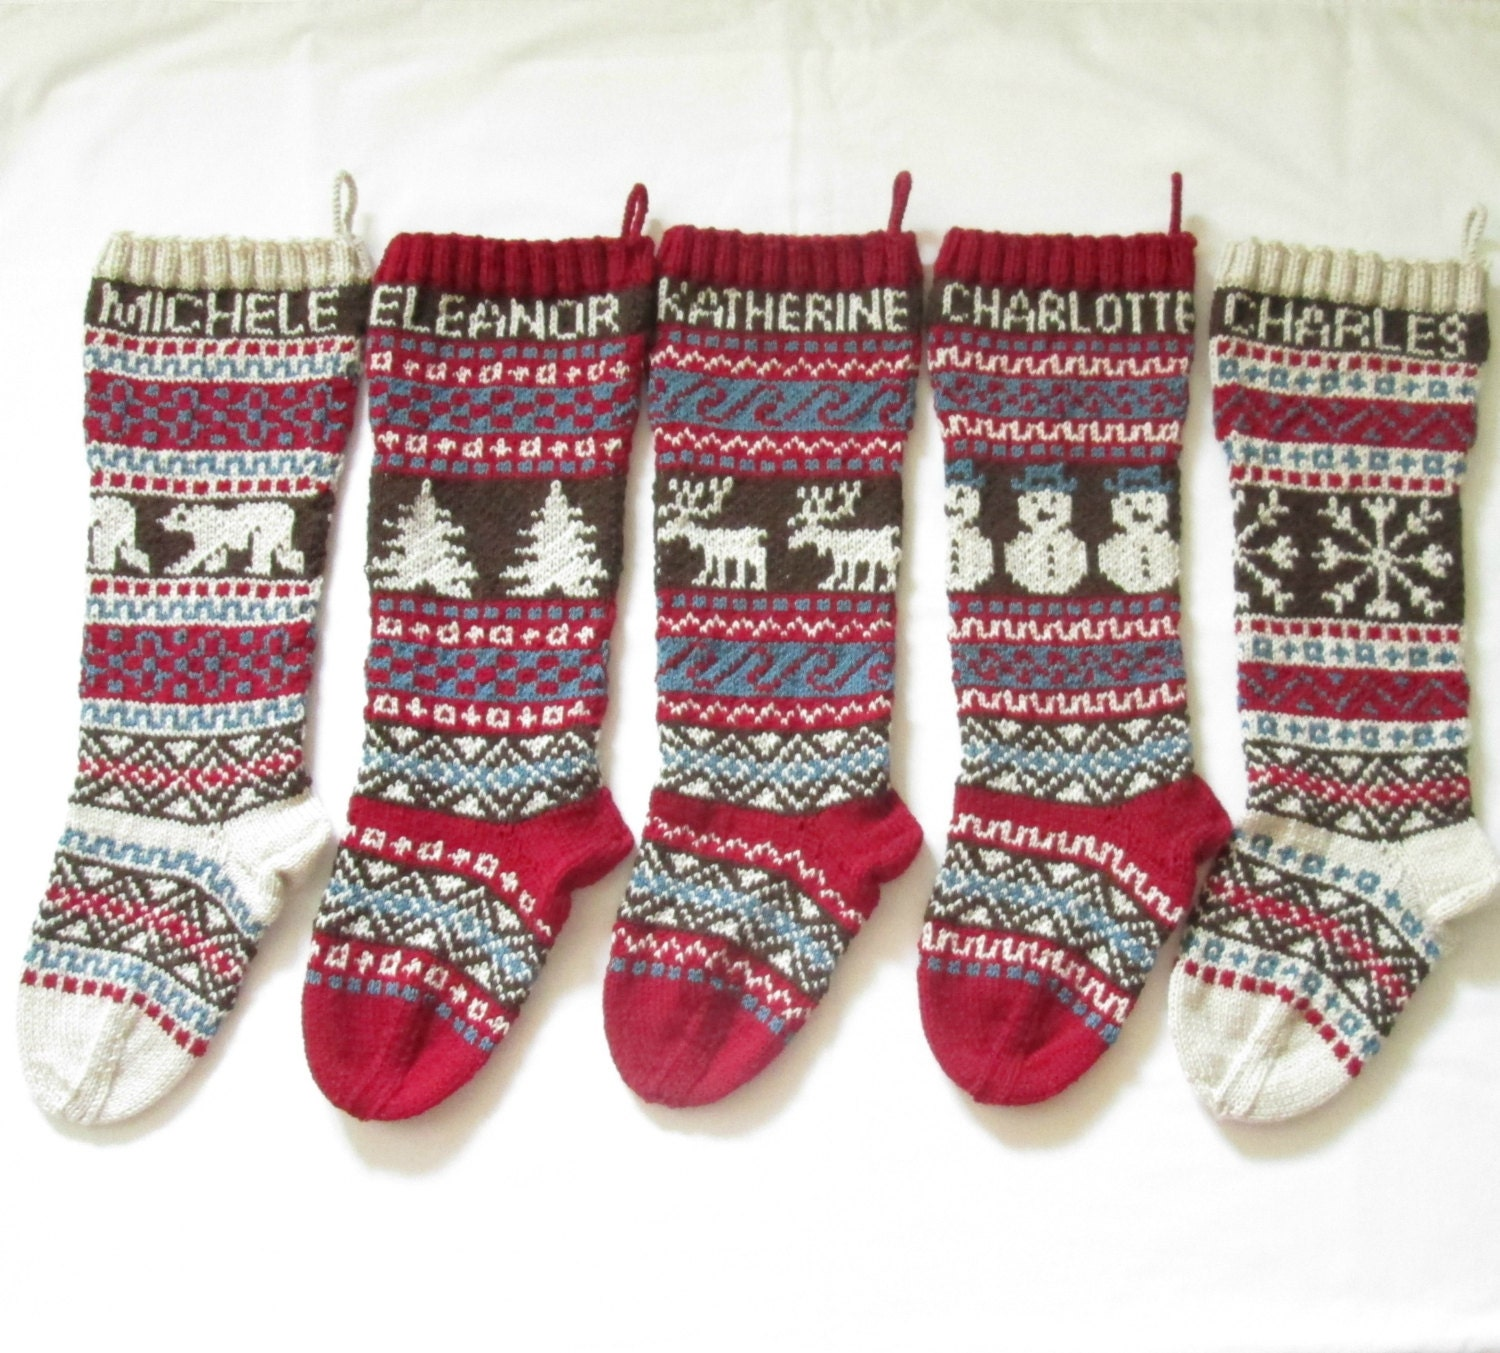 Knitting Pattern For Christmas Stocking Personalized : Personalized Knitted Christmas Stockings Set of 5 Hand